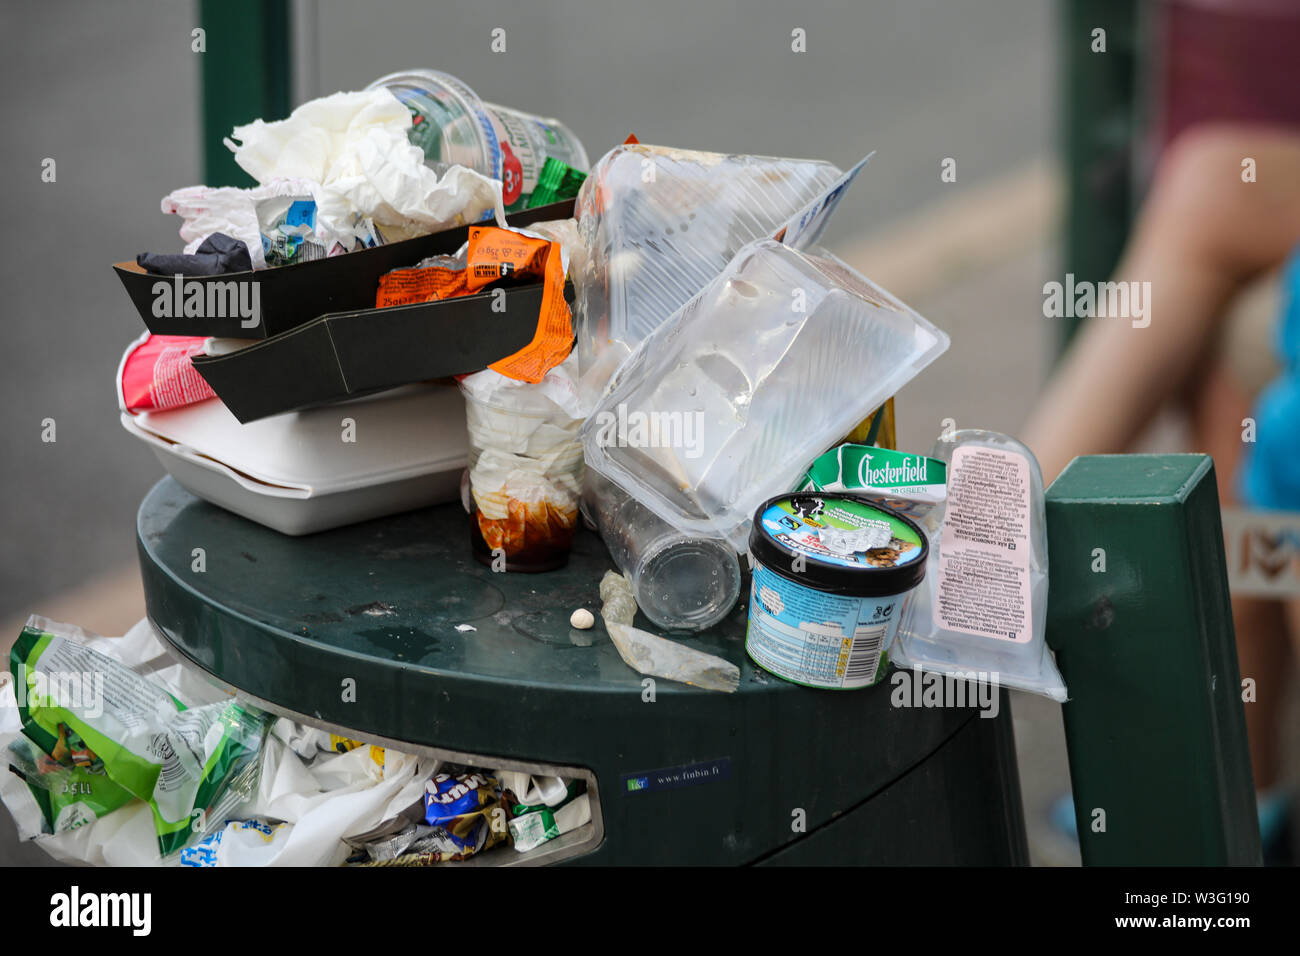 Overfilled litterbin in Hakaniemi district during Kallio Block Party 2018 in Helsinki, Finland - Stock Image